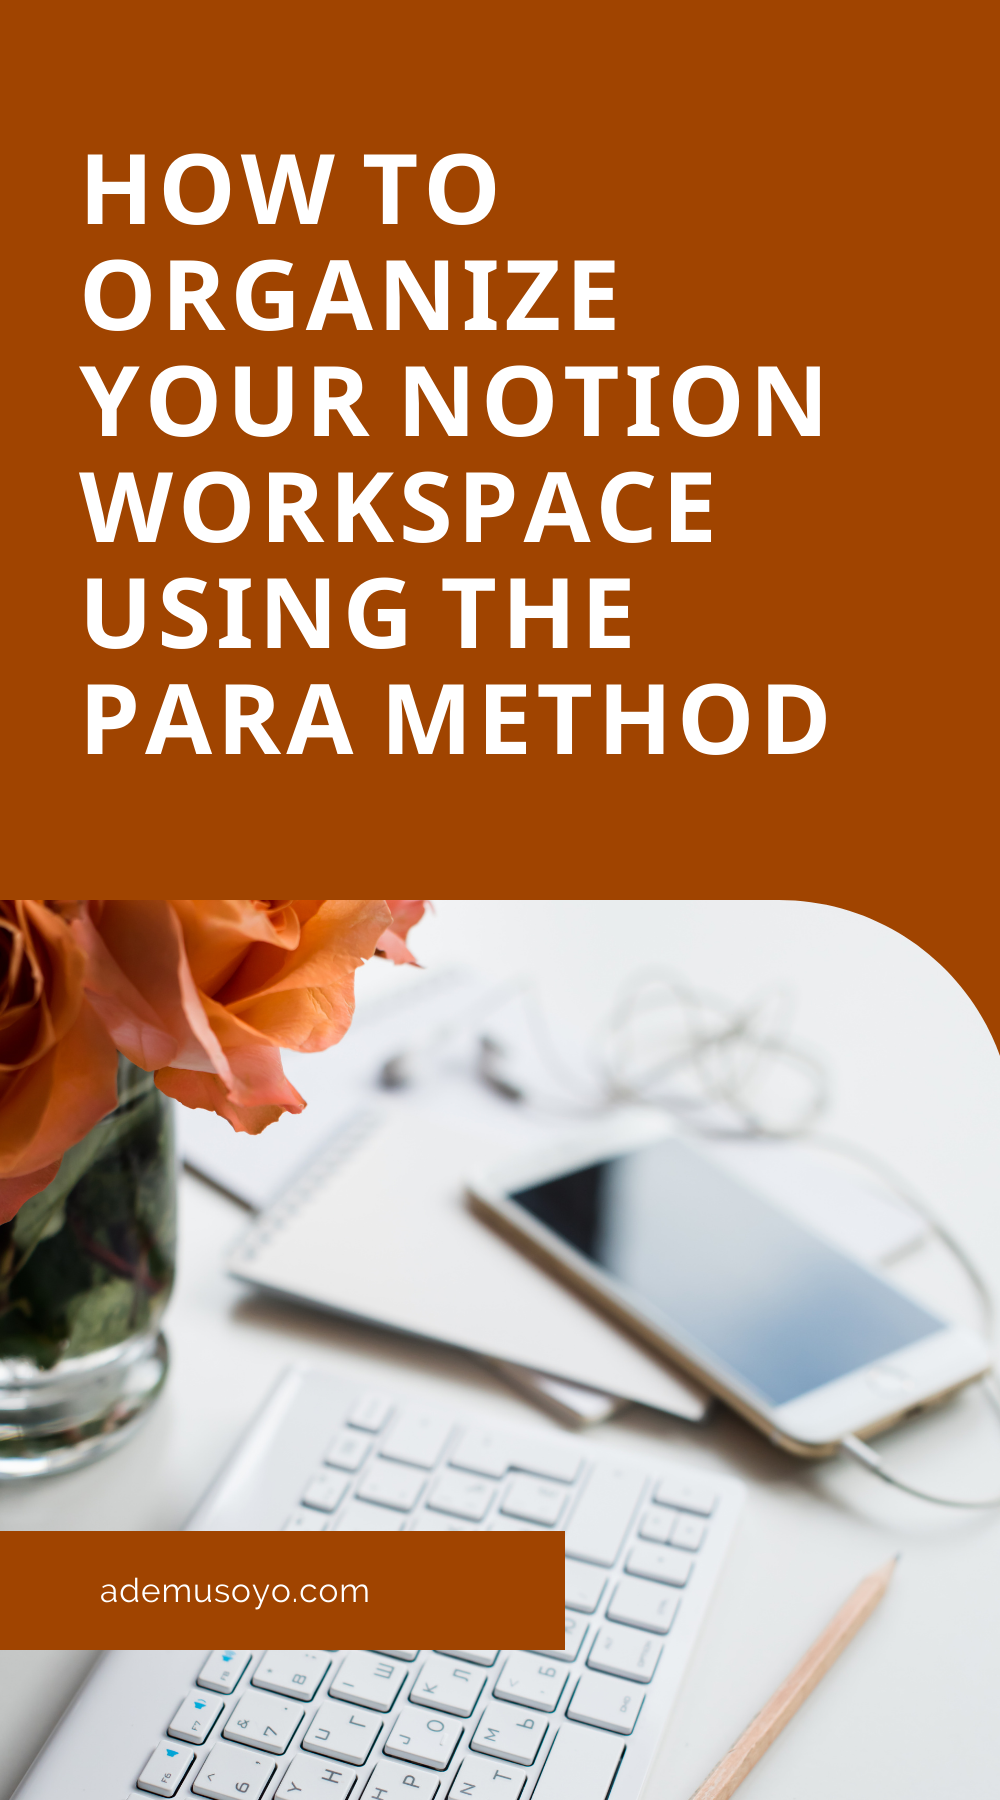 Organize your Notion Workspace using the PARA Method